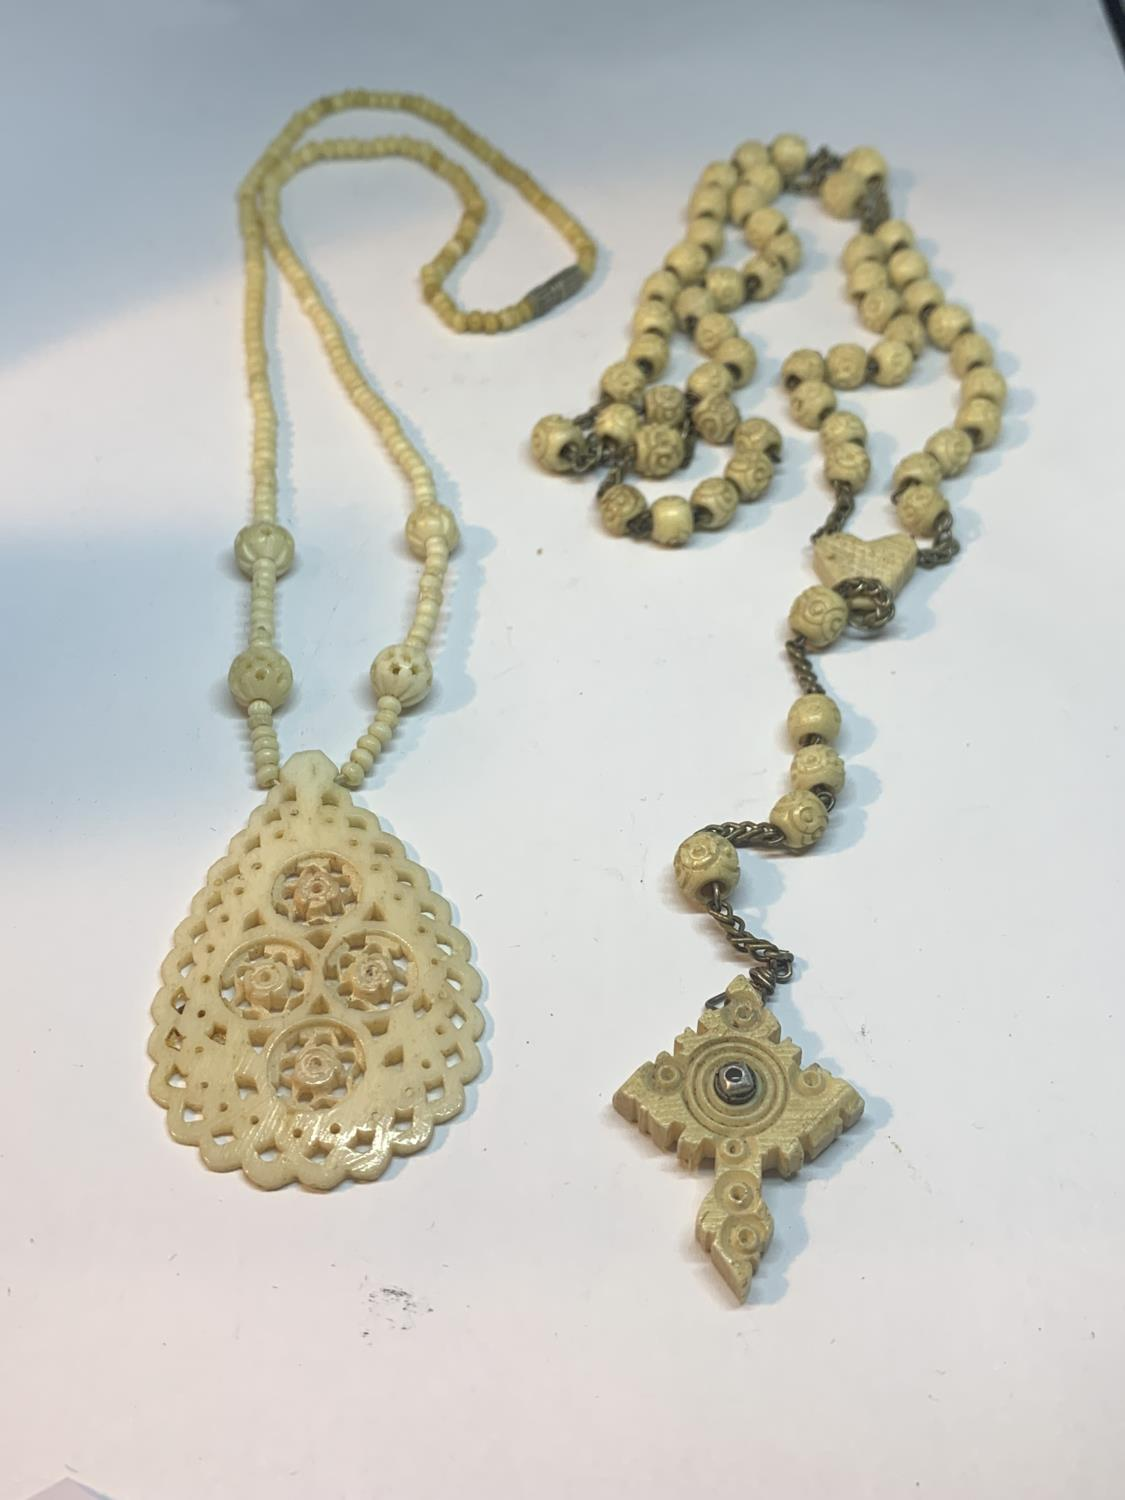 TWO CARVED BONE NECKLACES ONE WITH LARGE FOB AND ONE WITH A CROSS DESIGN